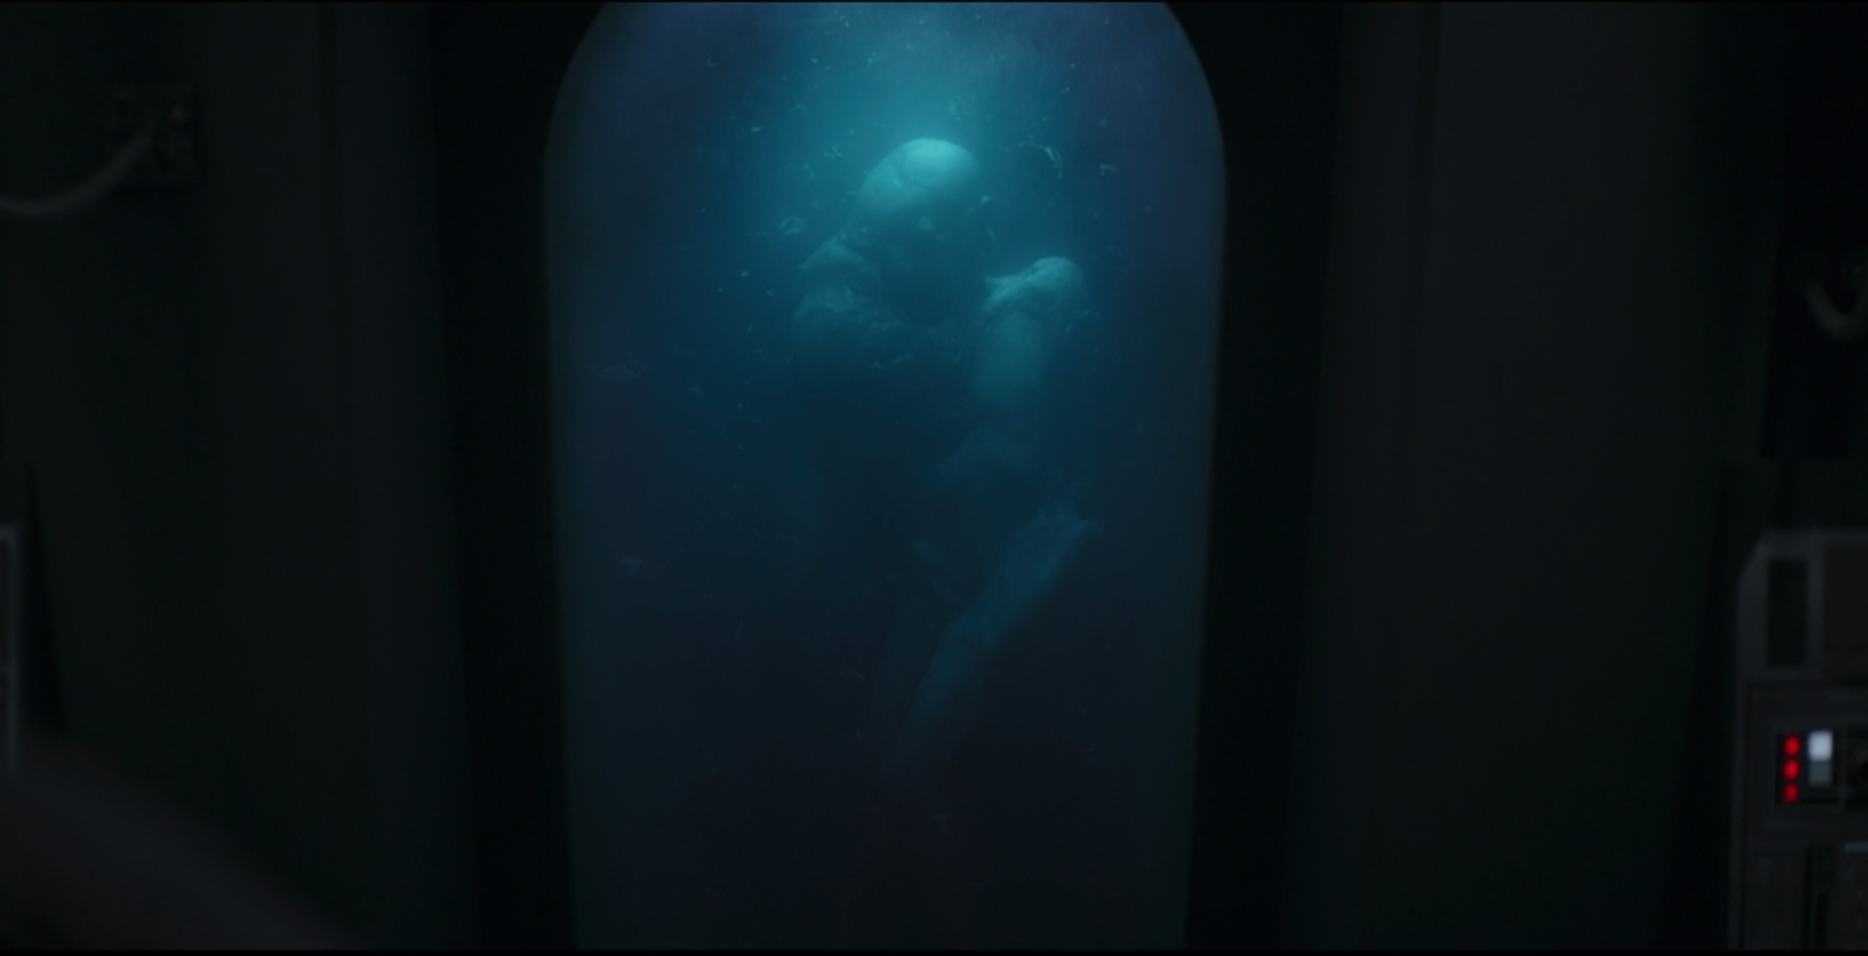 A body suspended in a vat in The Mandalorian